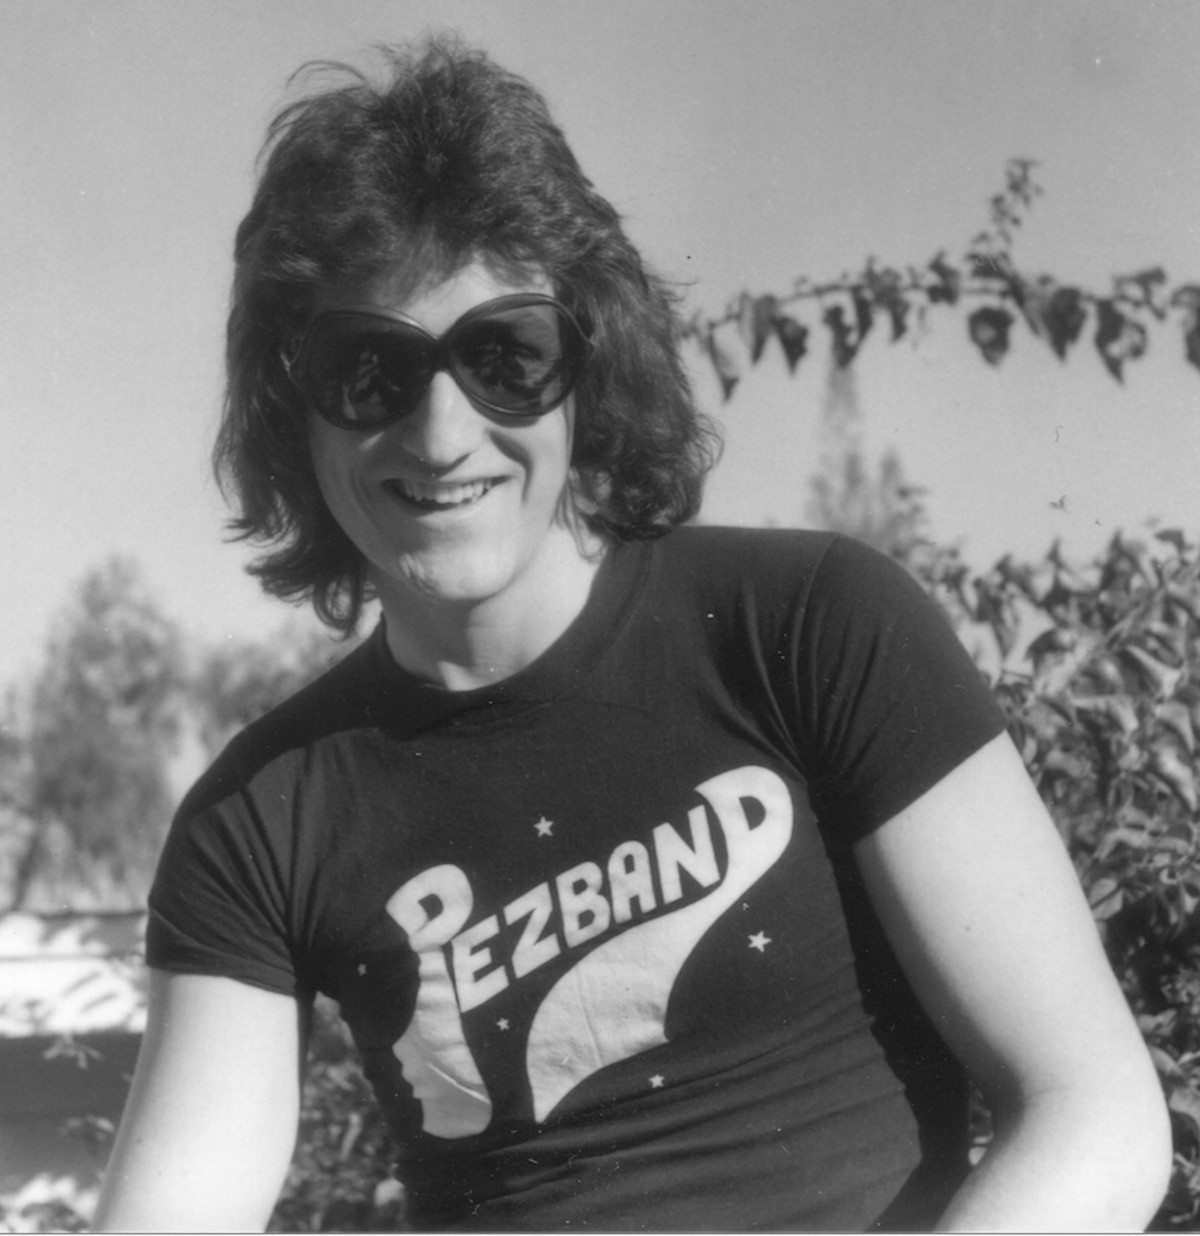 Mike Ruane in his days with Pezband.